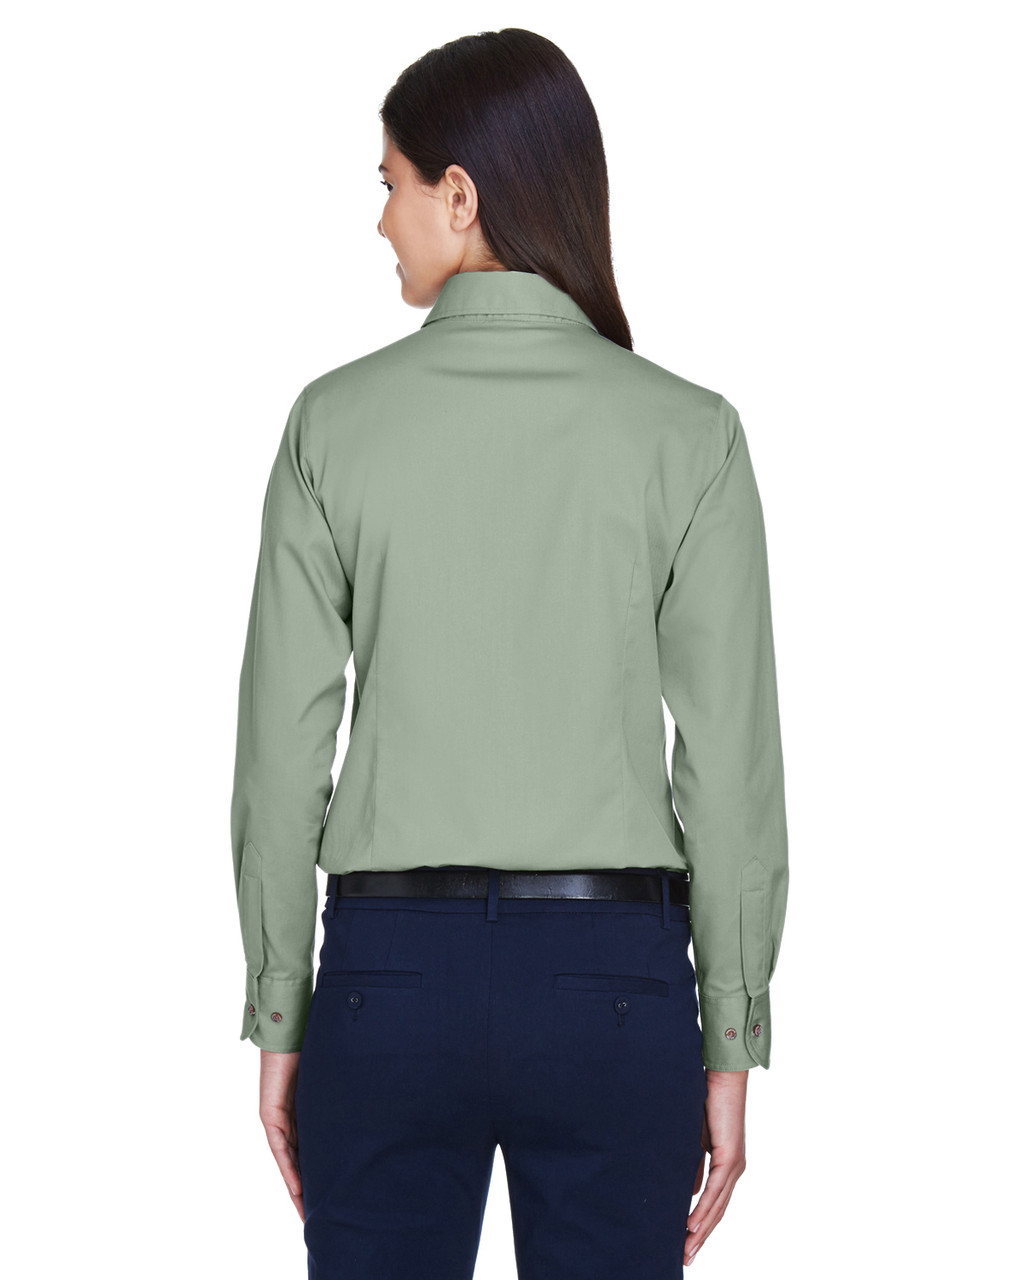 Dill - Back, M500W Harriton Easy Blend Long-Sleeve Twill Shirt with Stain-Release | BlankClothing.ca